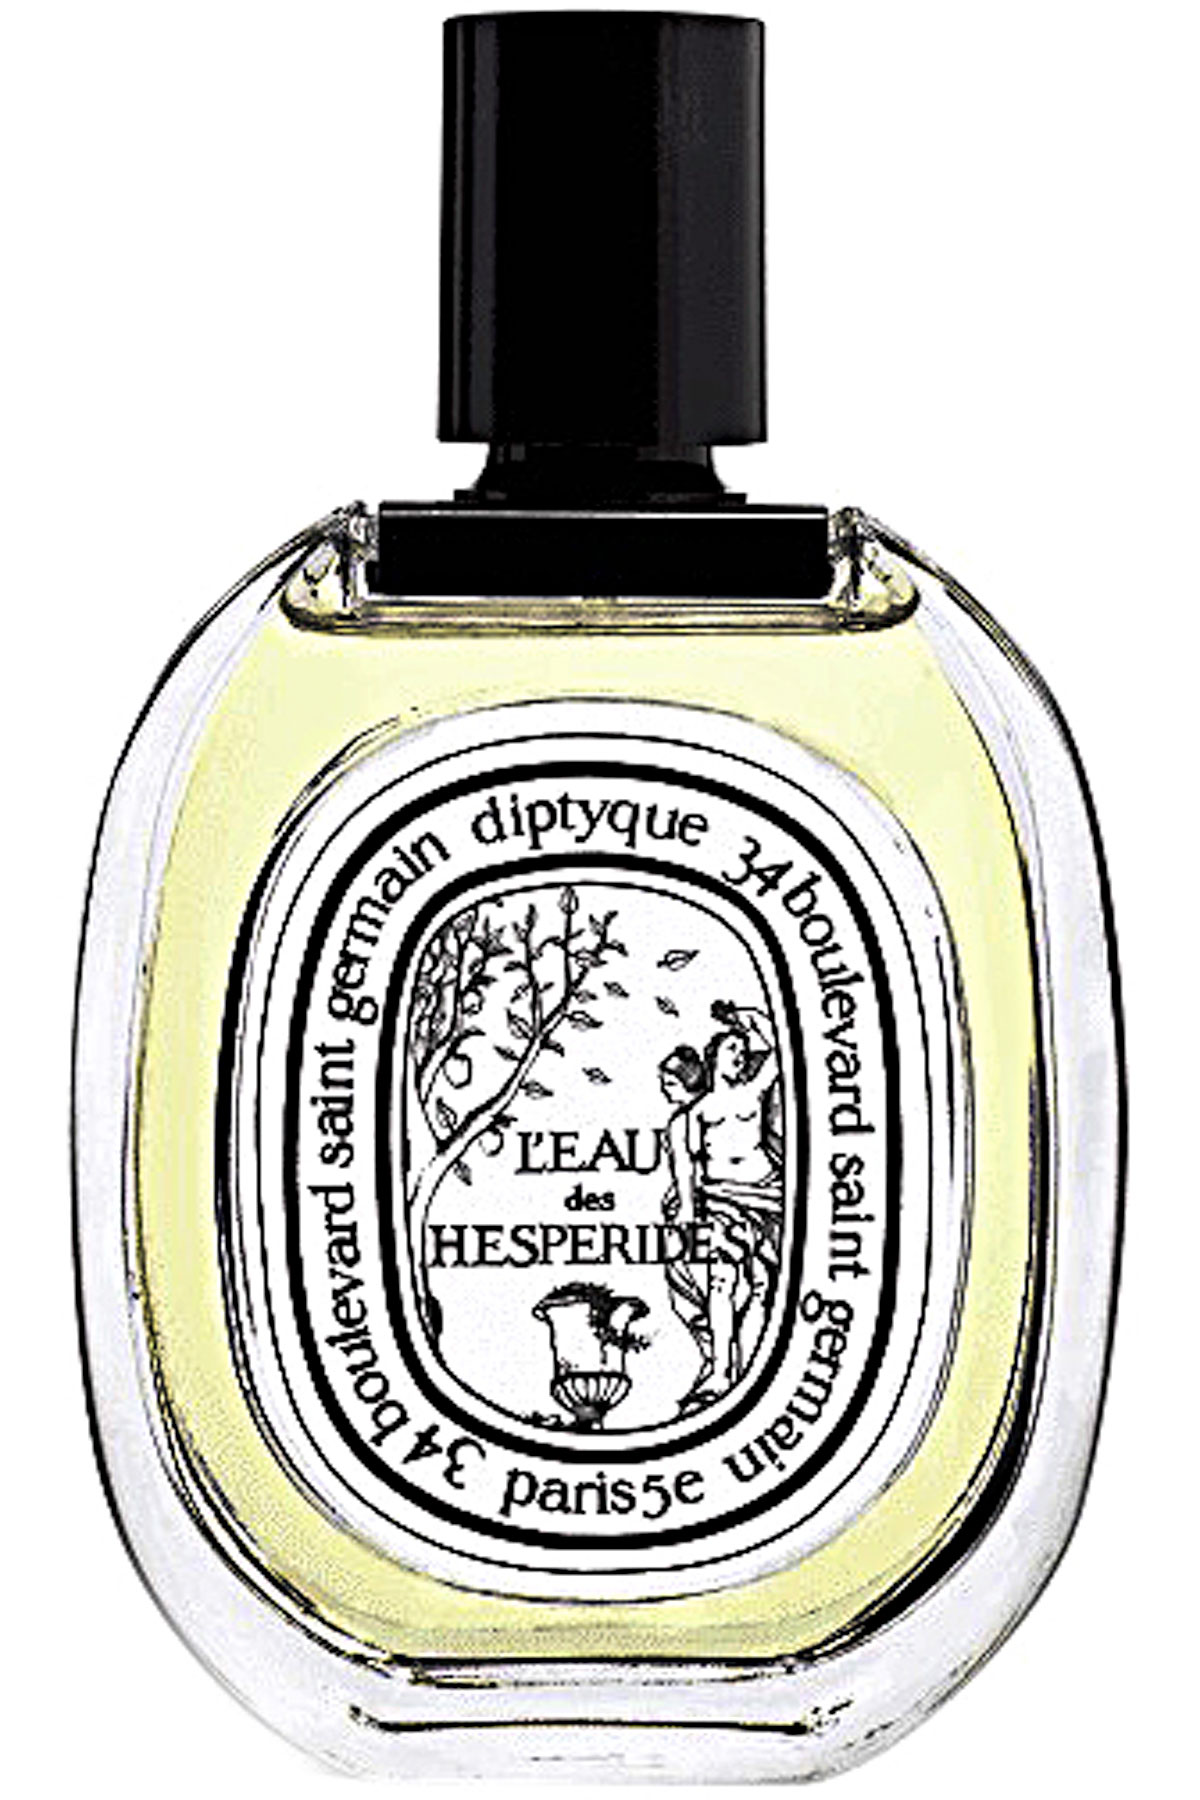 Diptyque Fragrances for Men, L Eau Des Hesperides - Eau De Toilette - 100 Ml, 2019, 100 ml